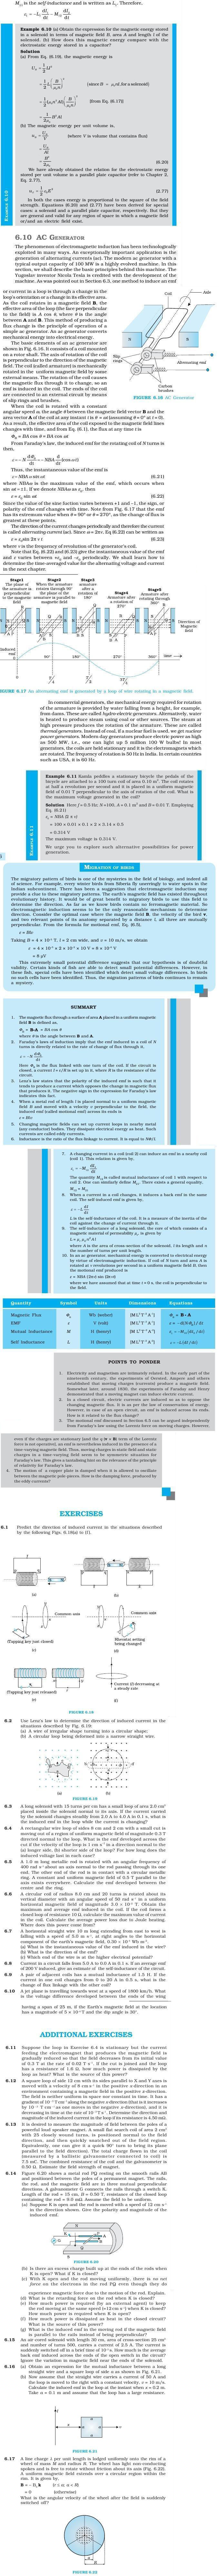 NCERT Class XII Physics Chapter 6 - Electromagnetic Induction